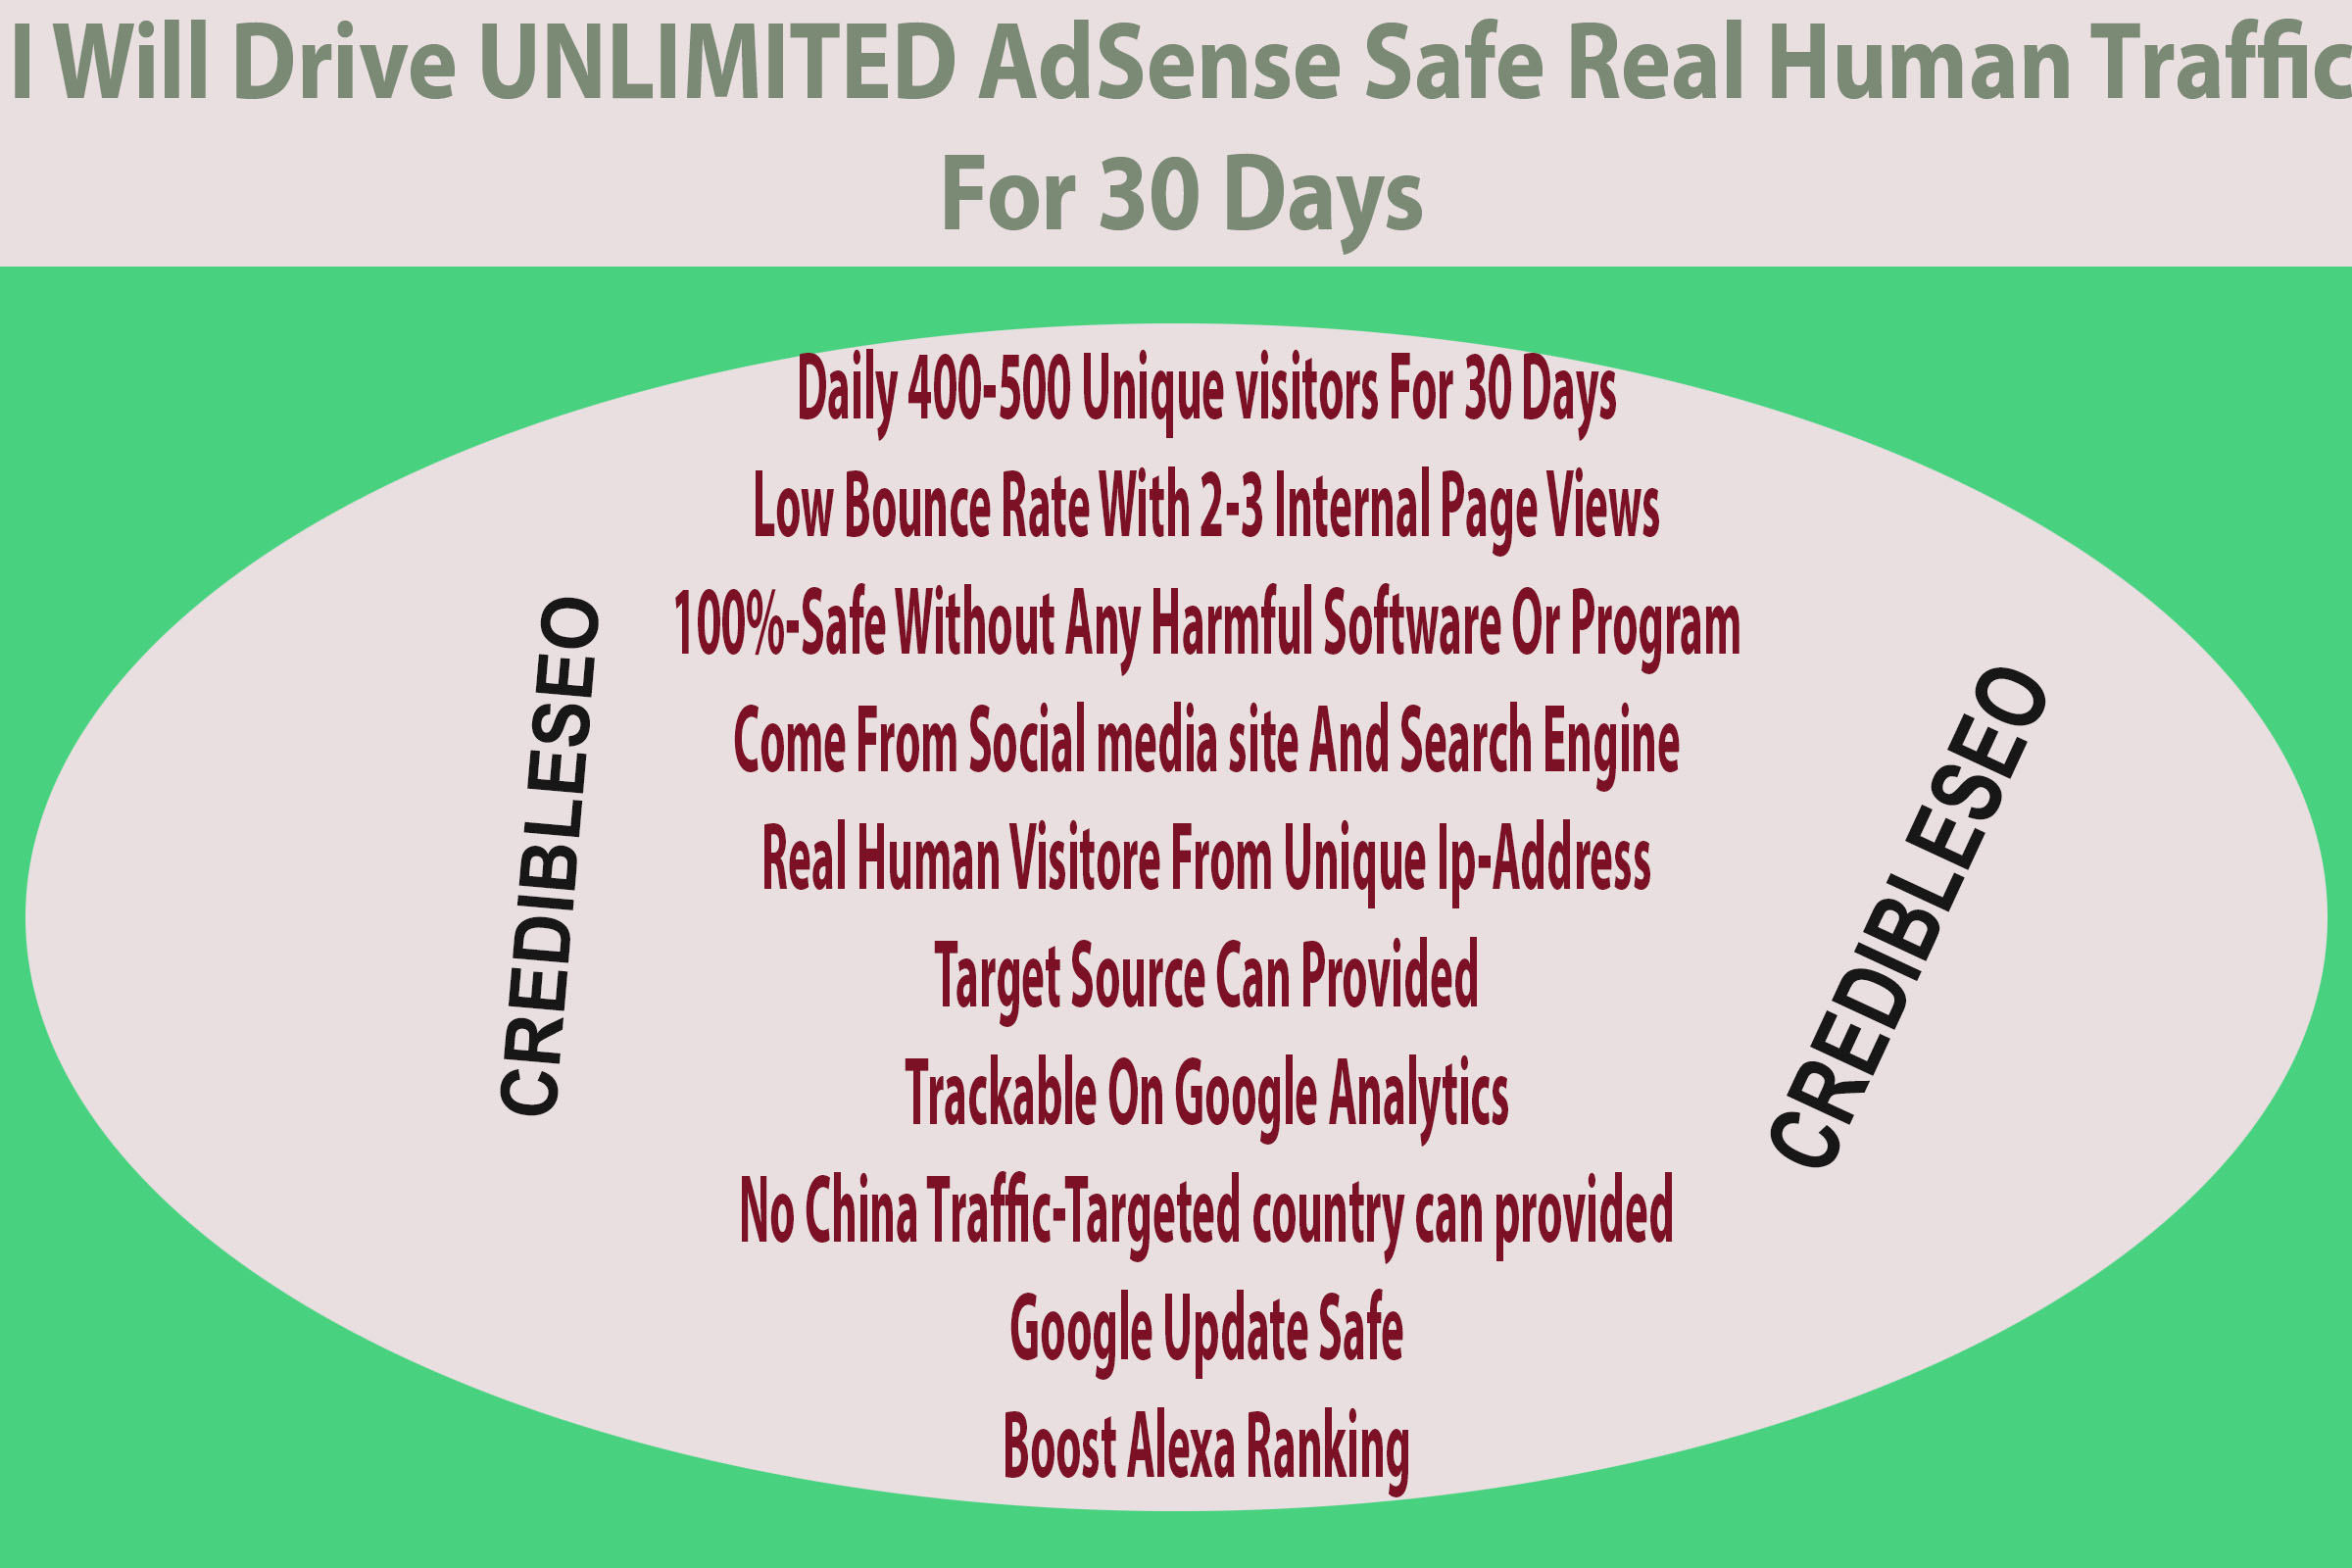 Drive UNLIMITED AdSense Safe Real Human Traffic For 30 Days